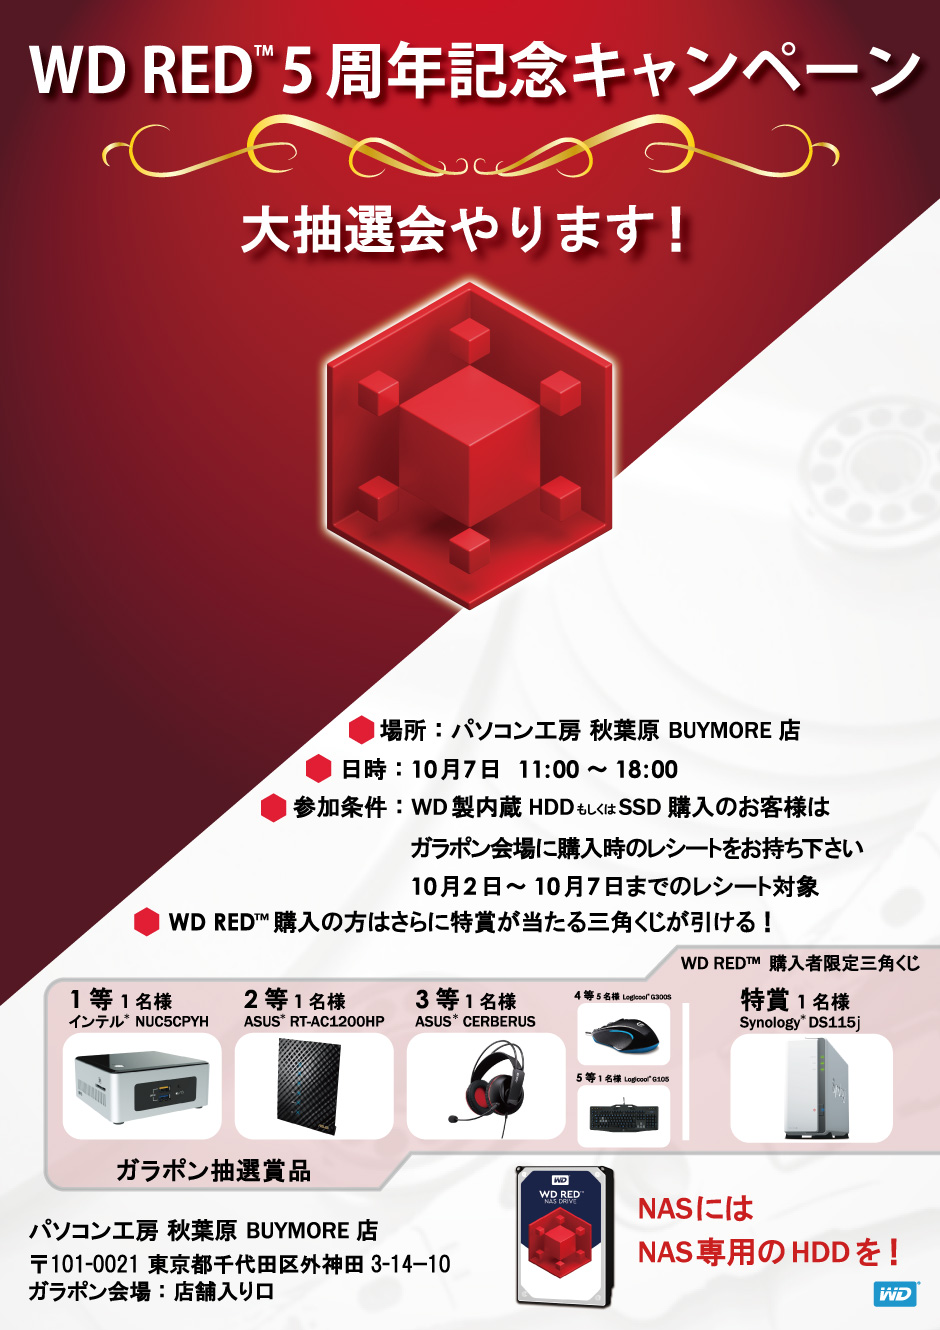 WD RED 5周年記念キャンペーン in パソコン工房秋葉原BUYMORE店